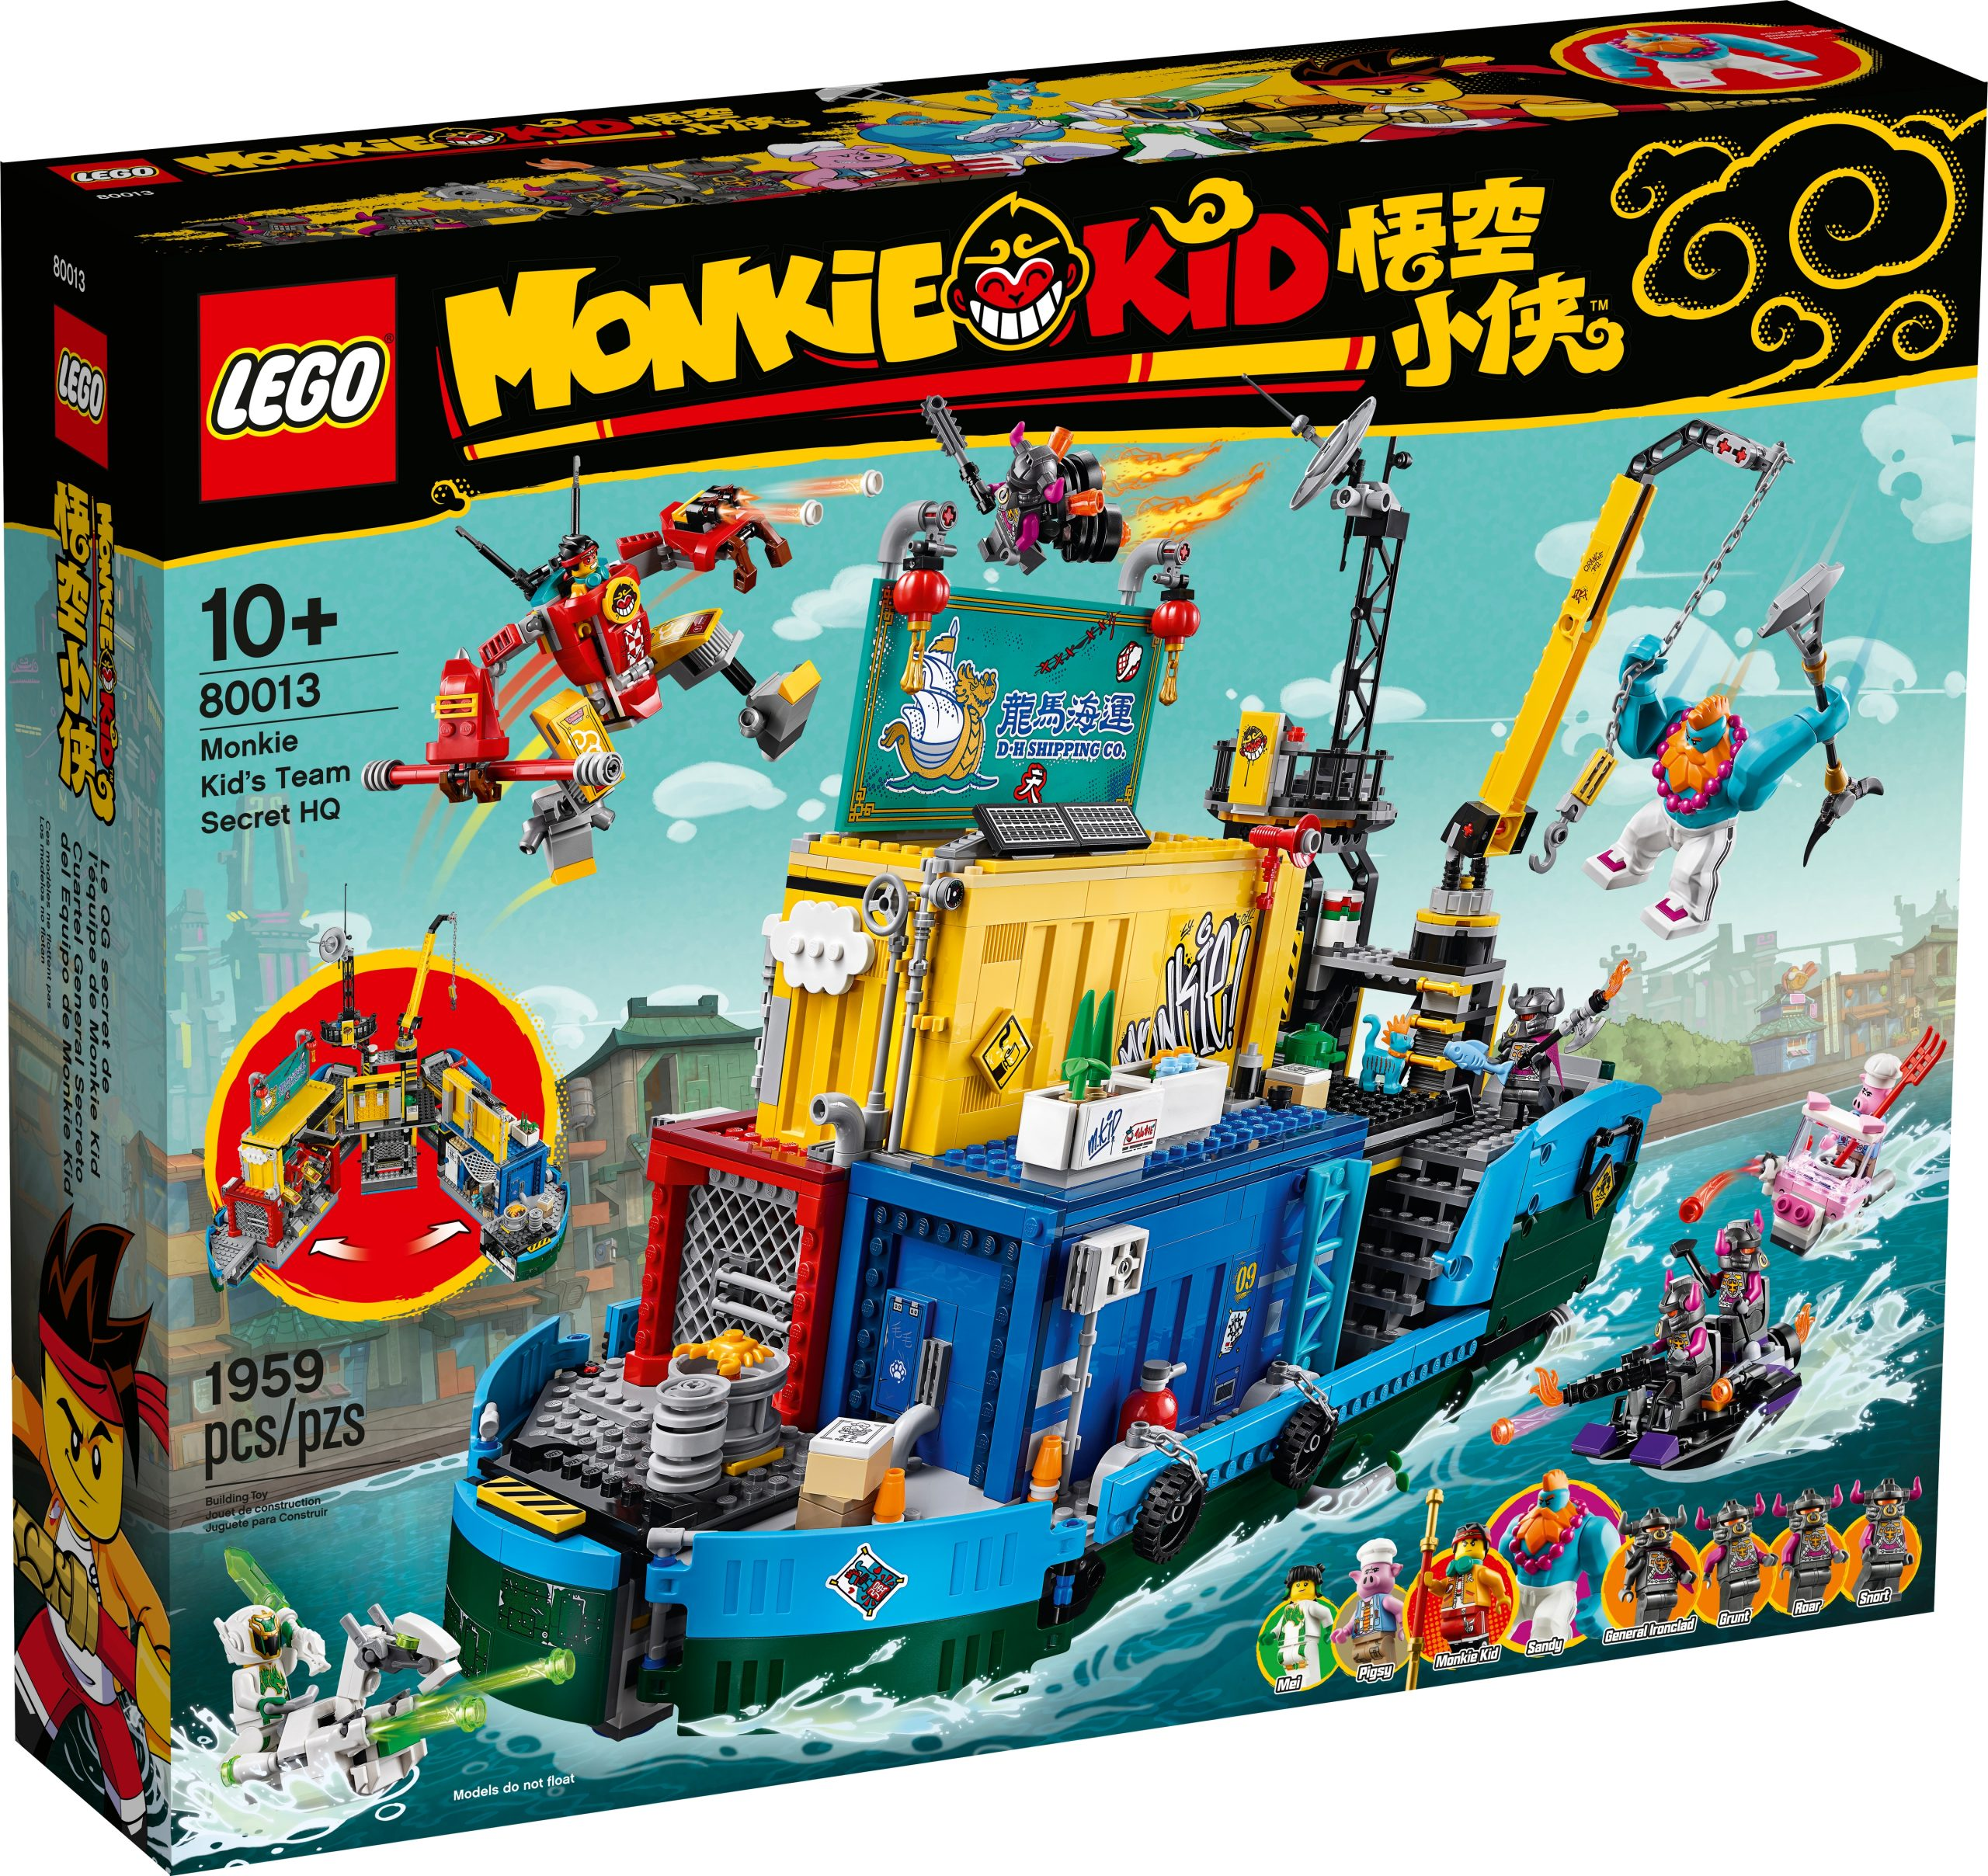 lego 80013 monkie kids team secret hq scaled